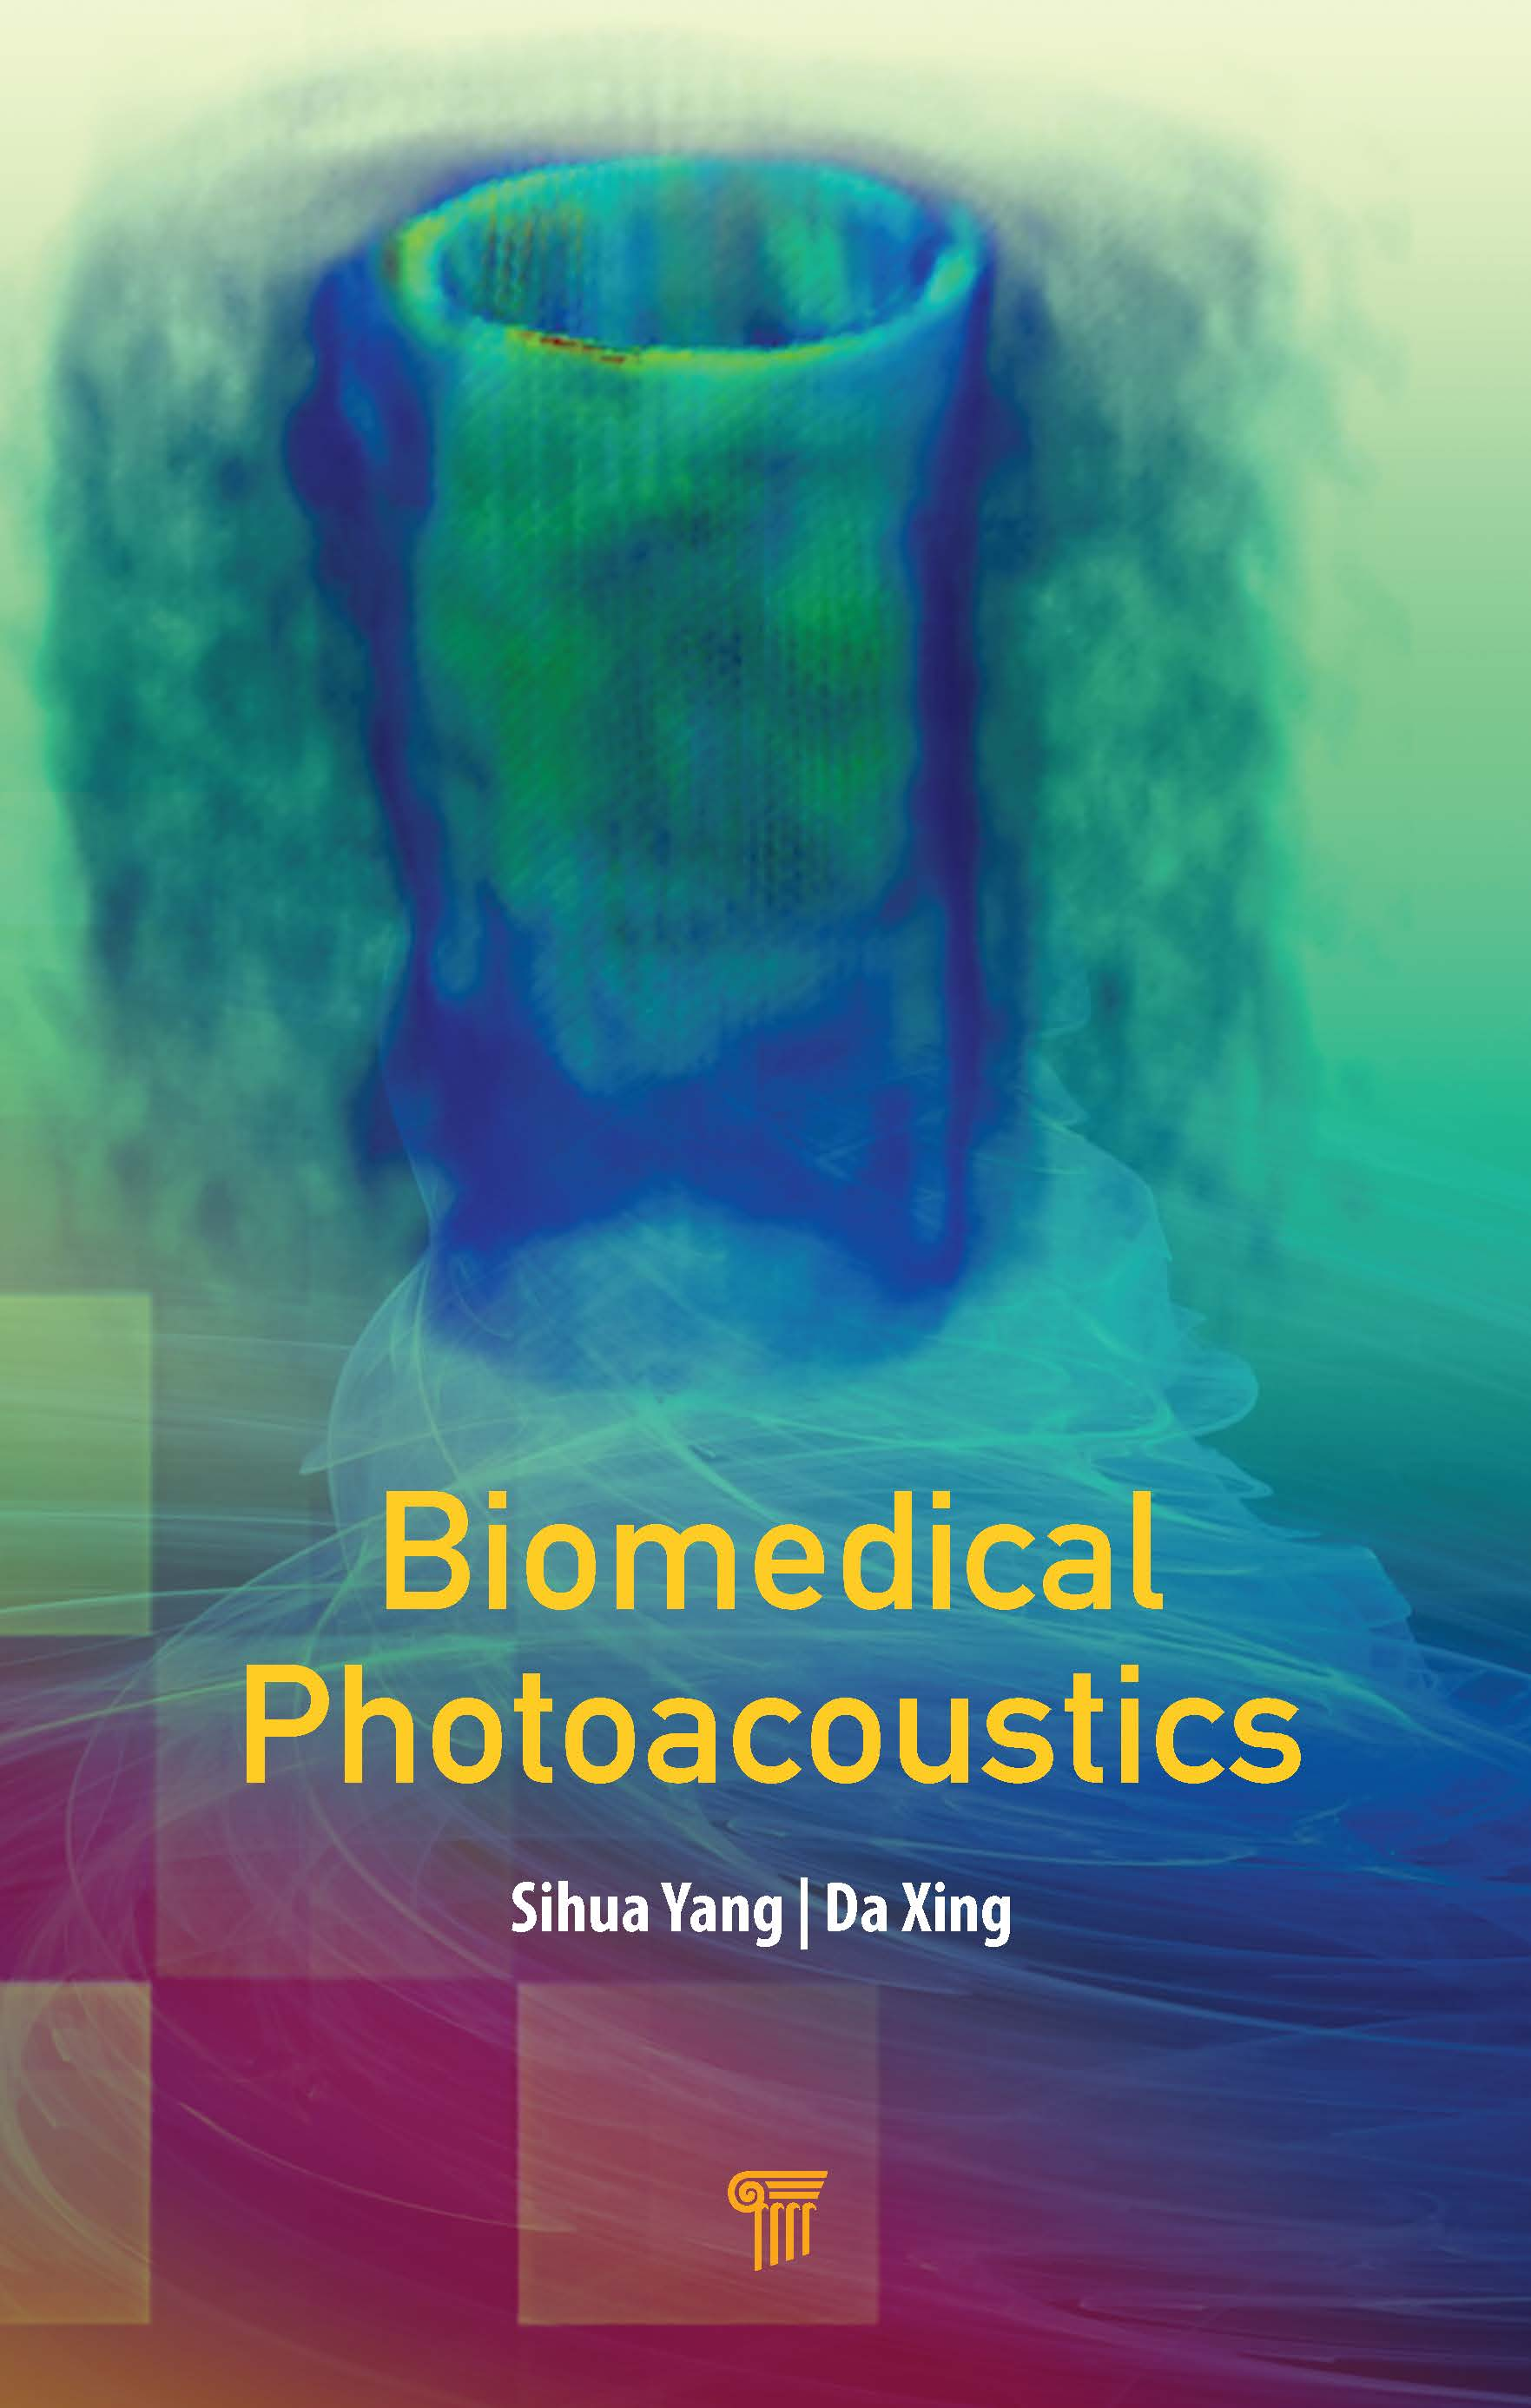 Biomedical Photoacoustics: 1st Edition (Hardback) book cover